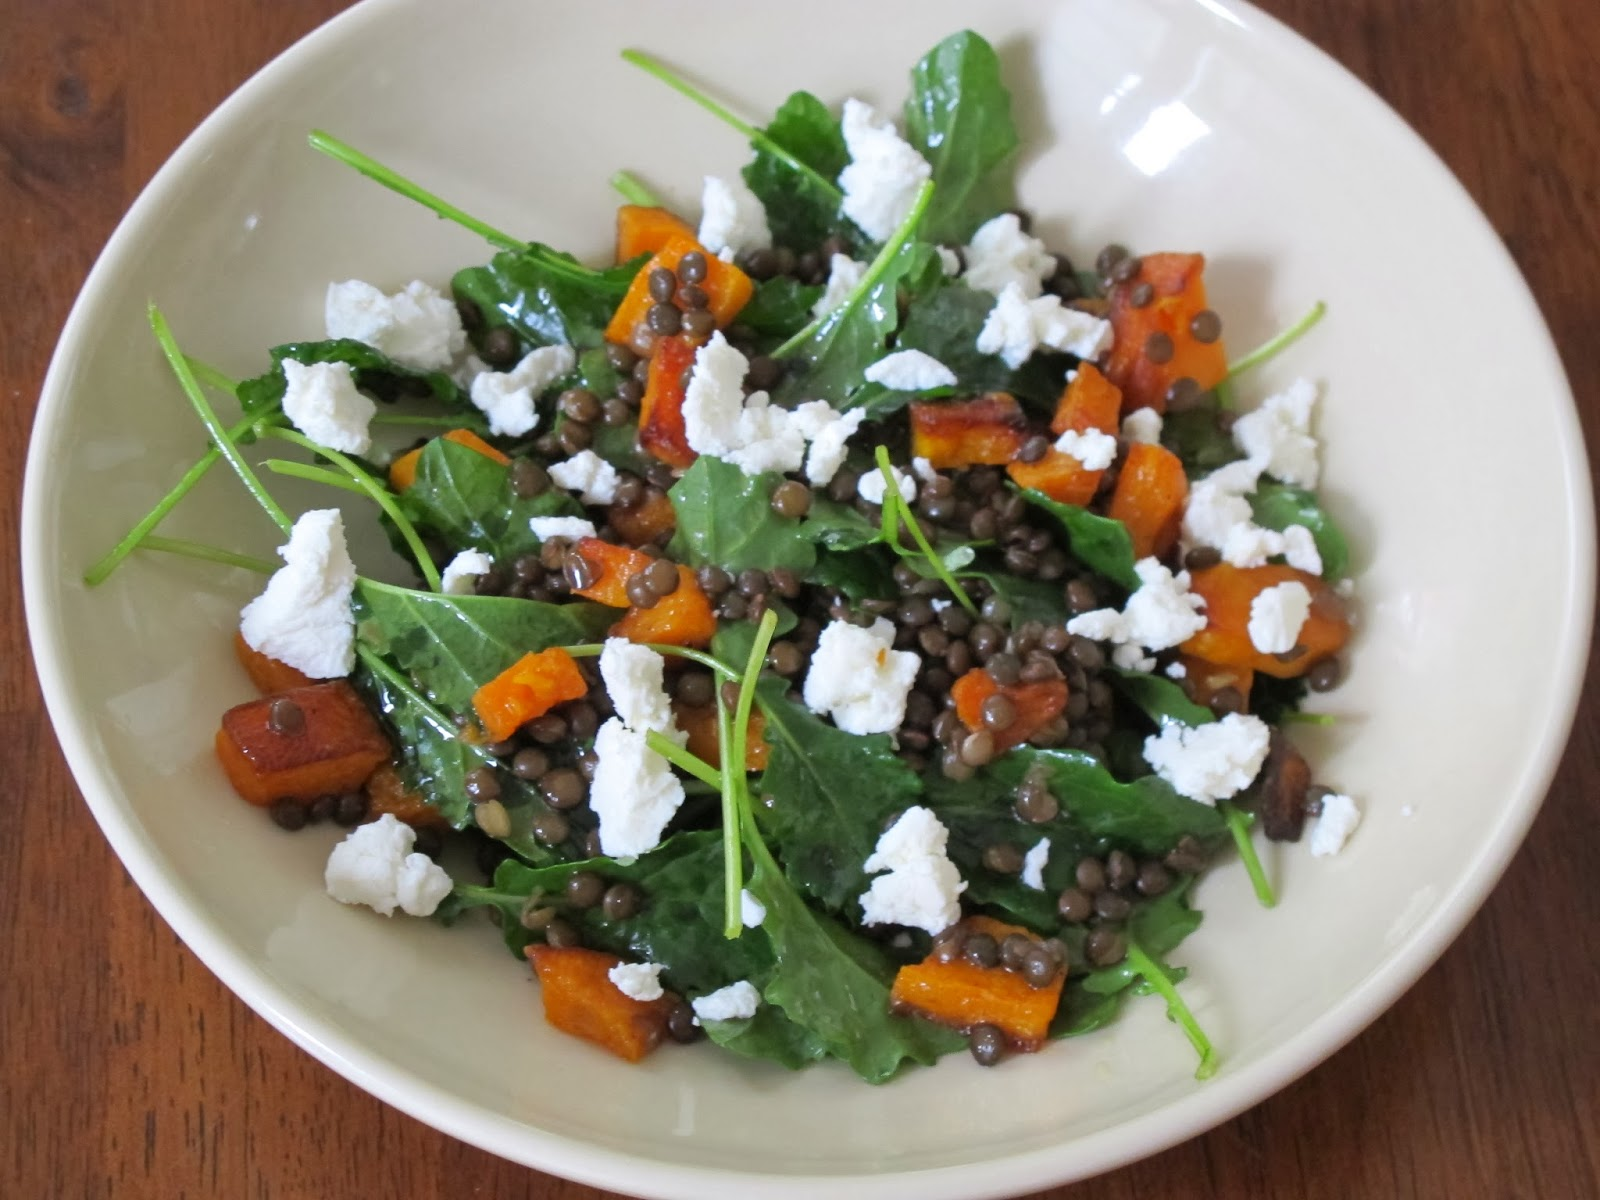 Lentil, Goat Cheese, Butternut Squash, and Baby Kale Salad